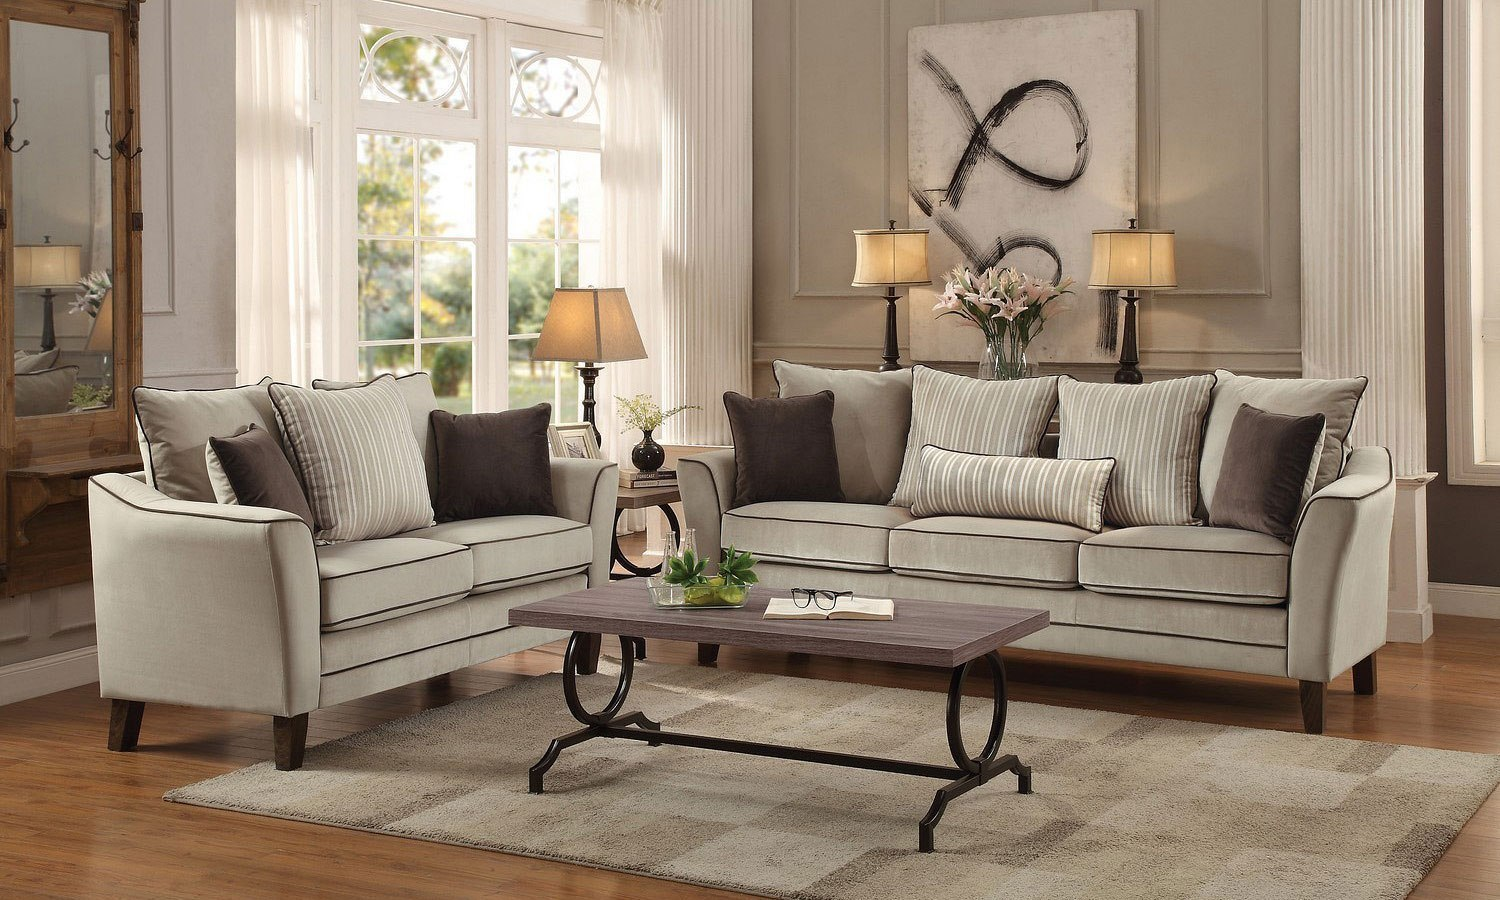 Ouray Living Room Set